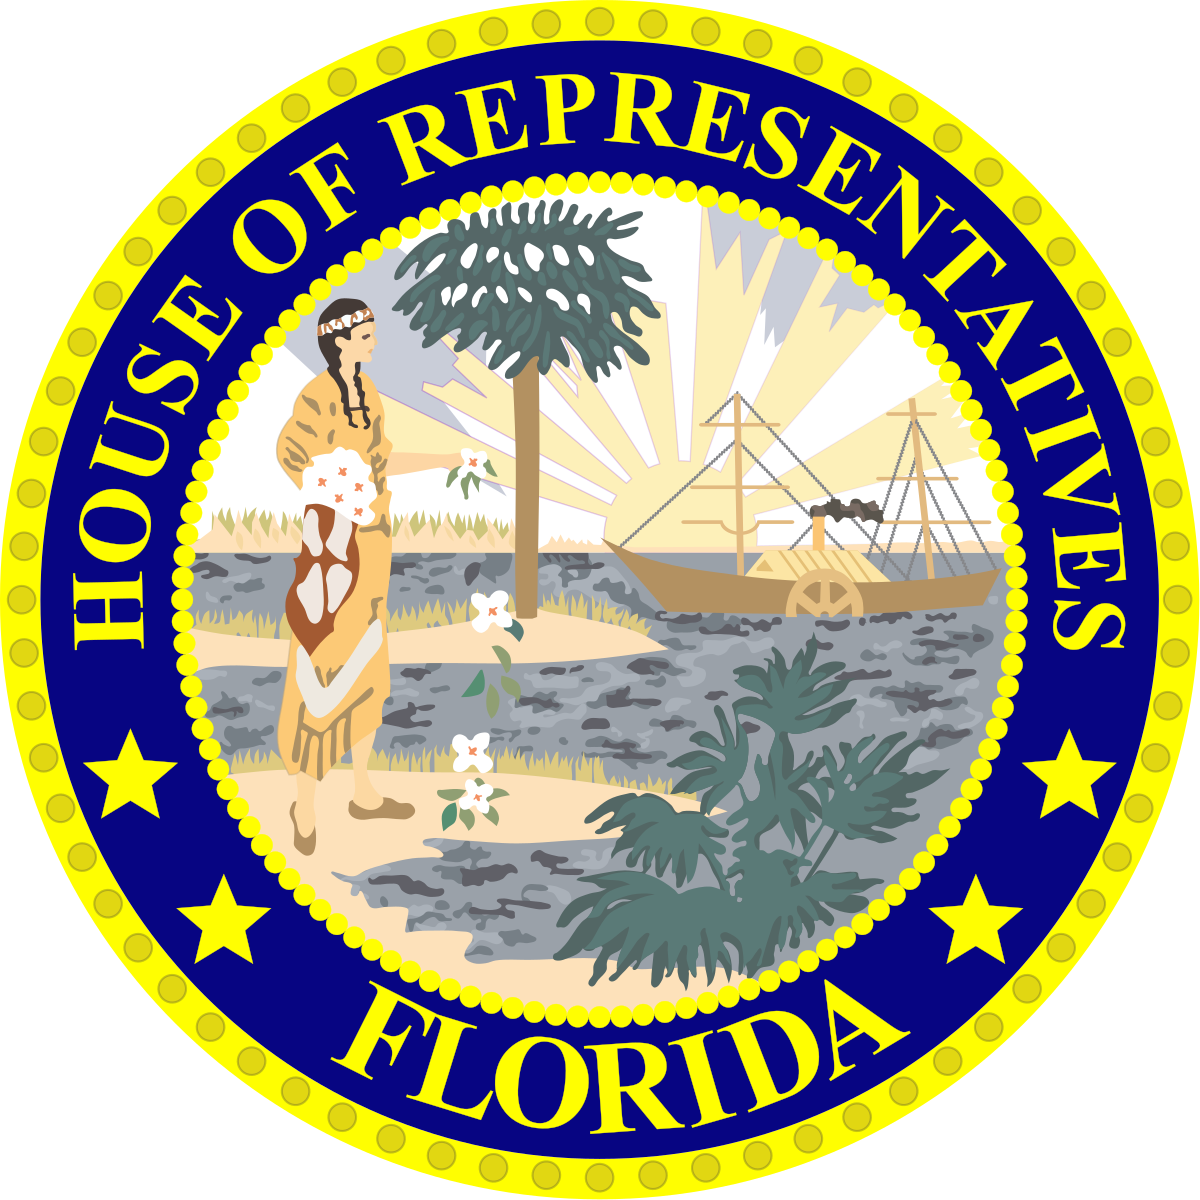 Senate and house of representatives clipart clip art royalty free library Florida House of Representatives - Wikipedia clip art royalty free library